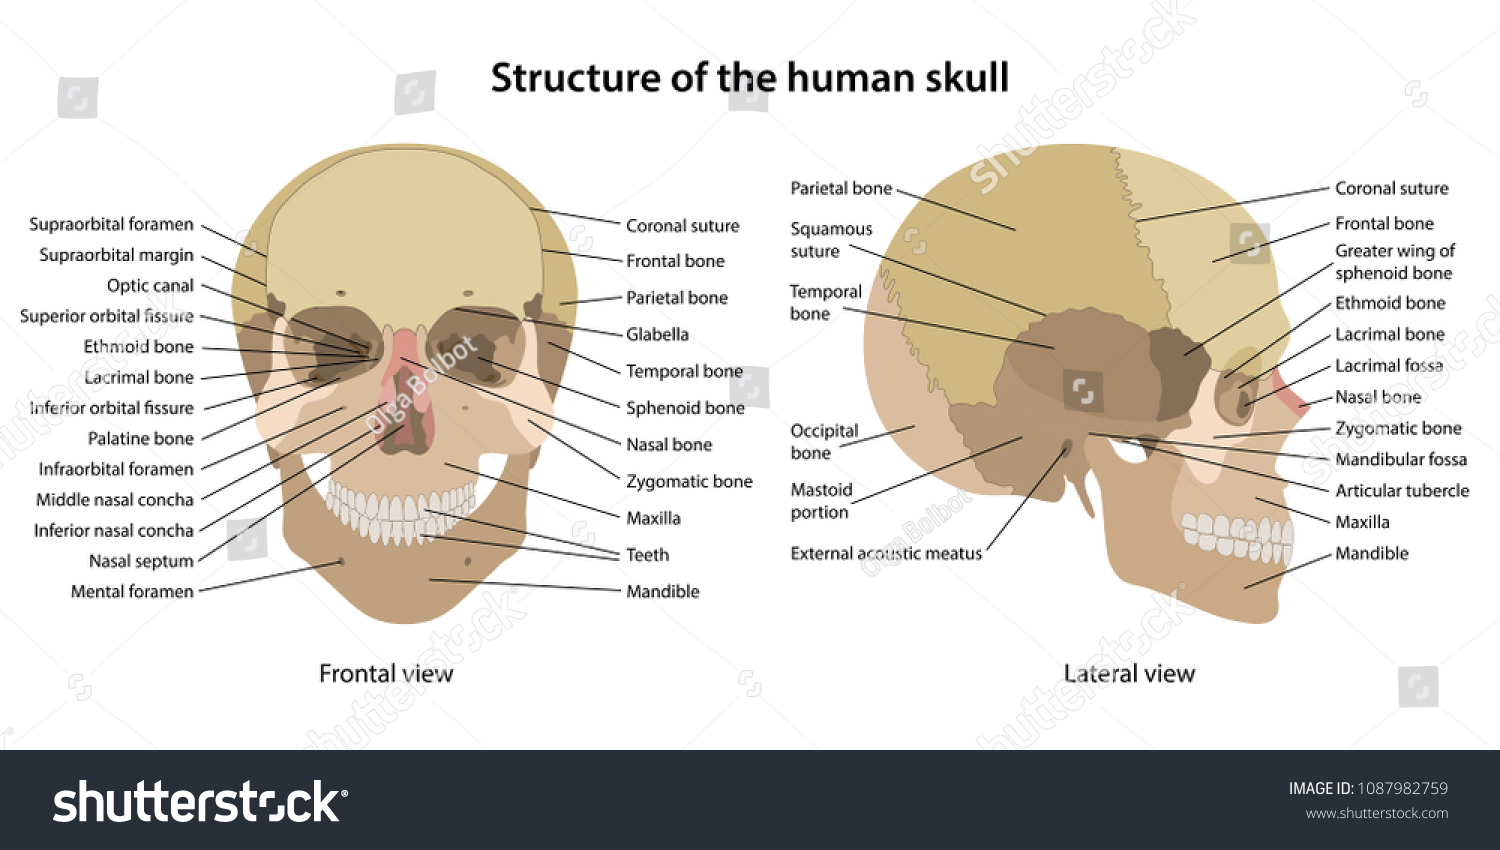 hight resolution of structure of the human skull with main parts labeled anterior view and lateral view